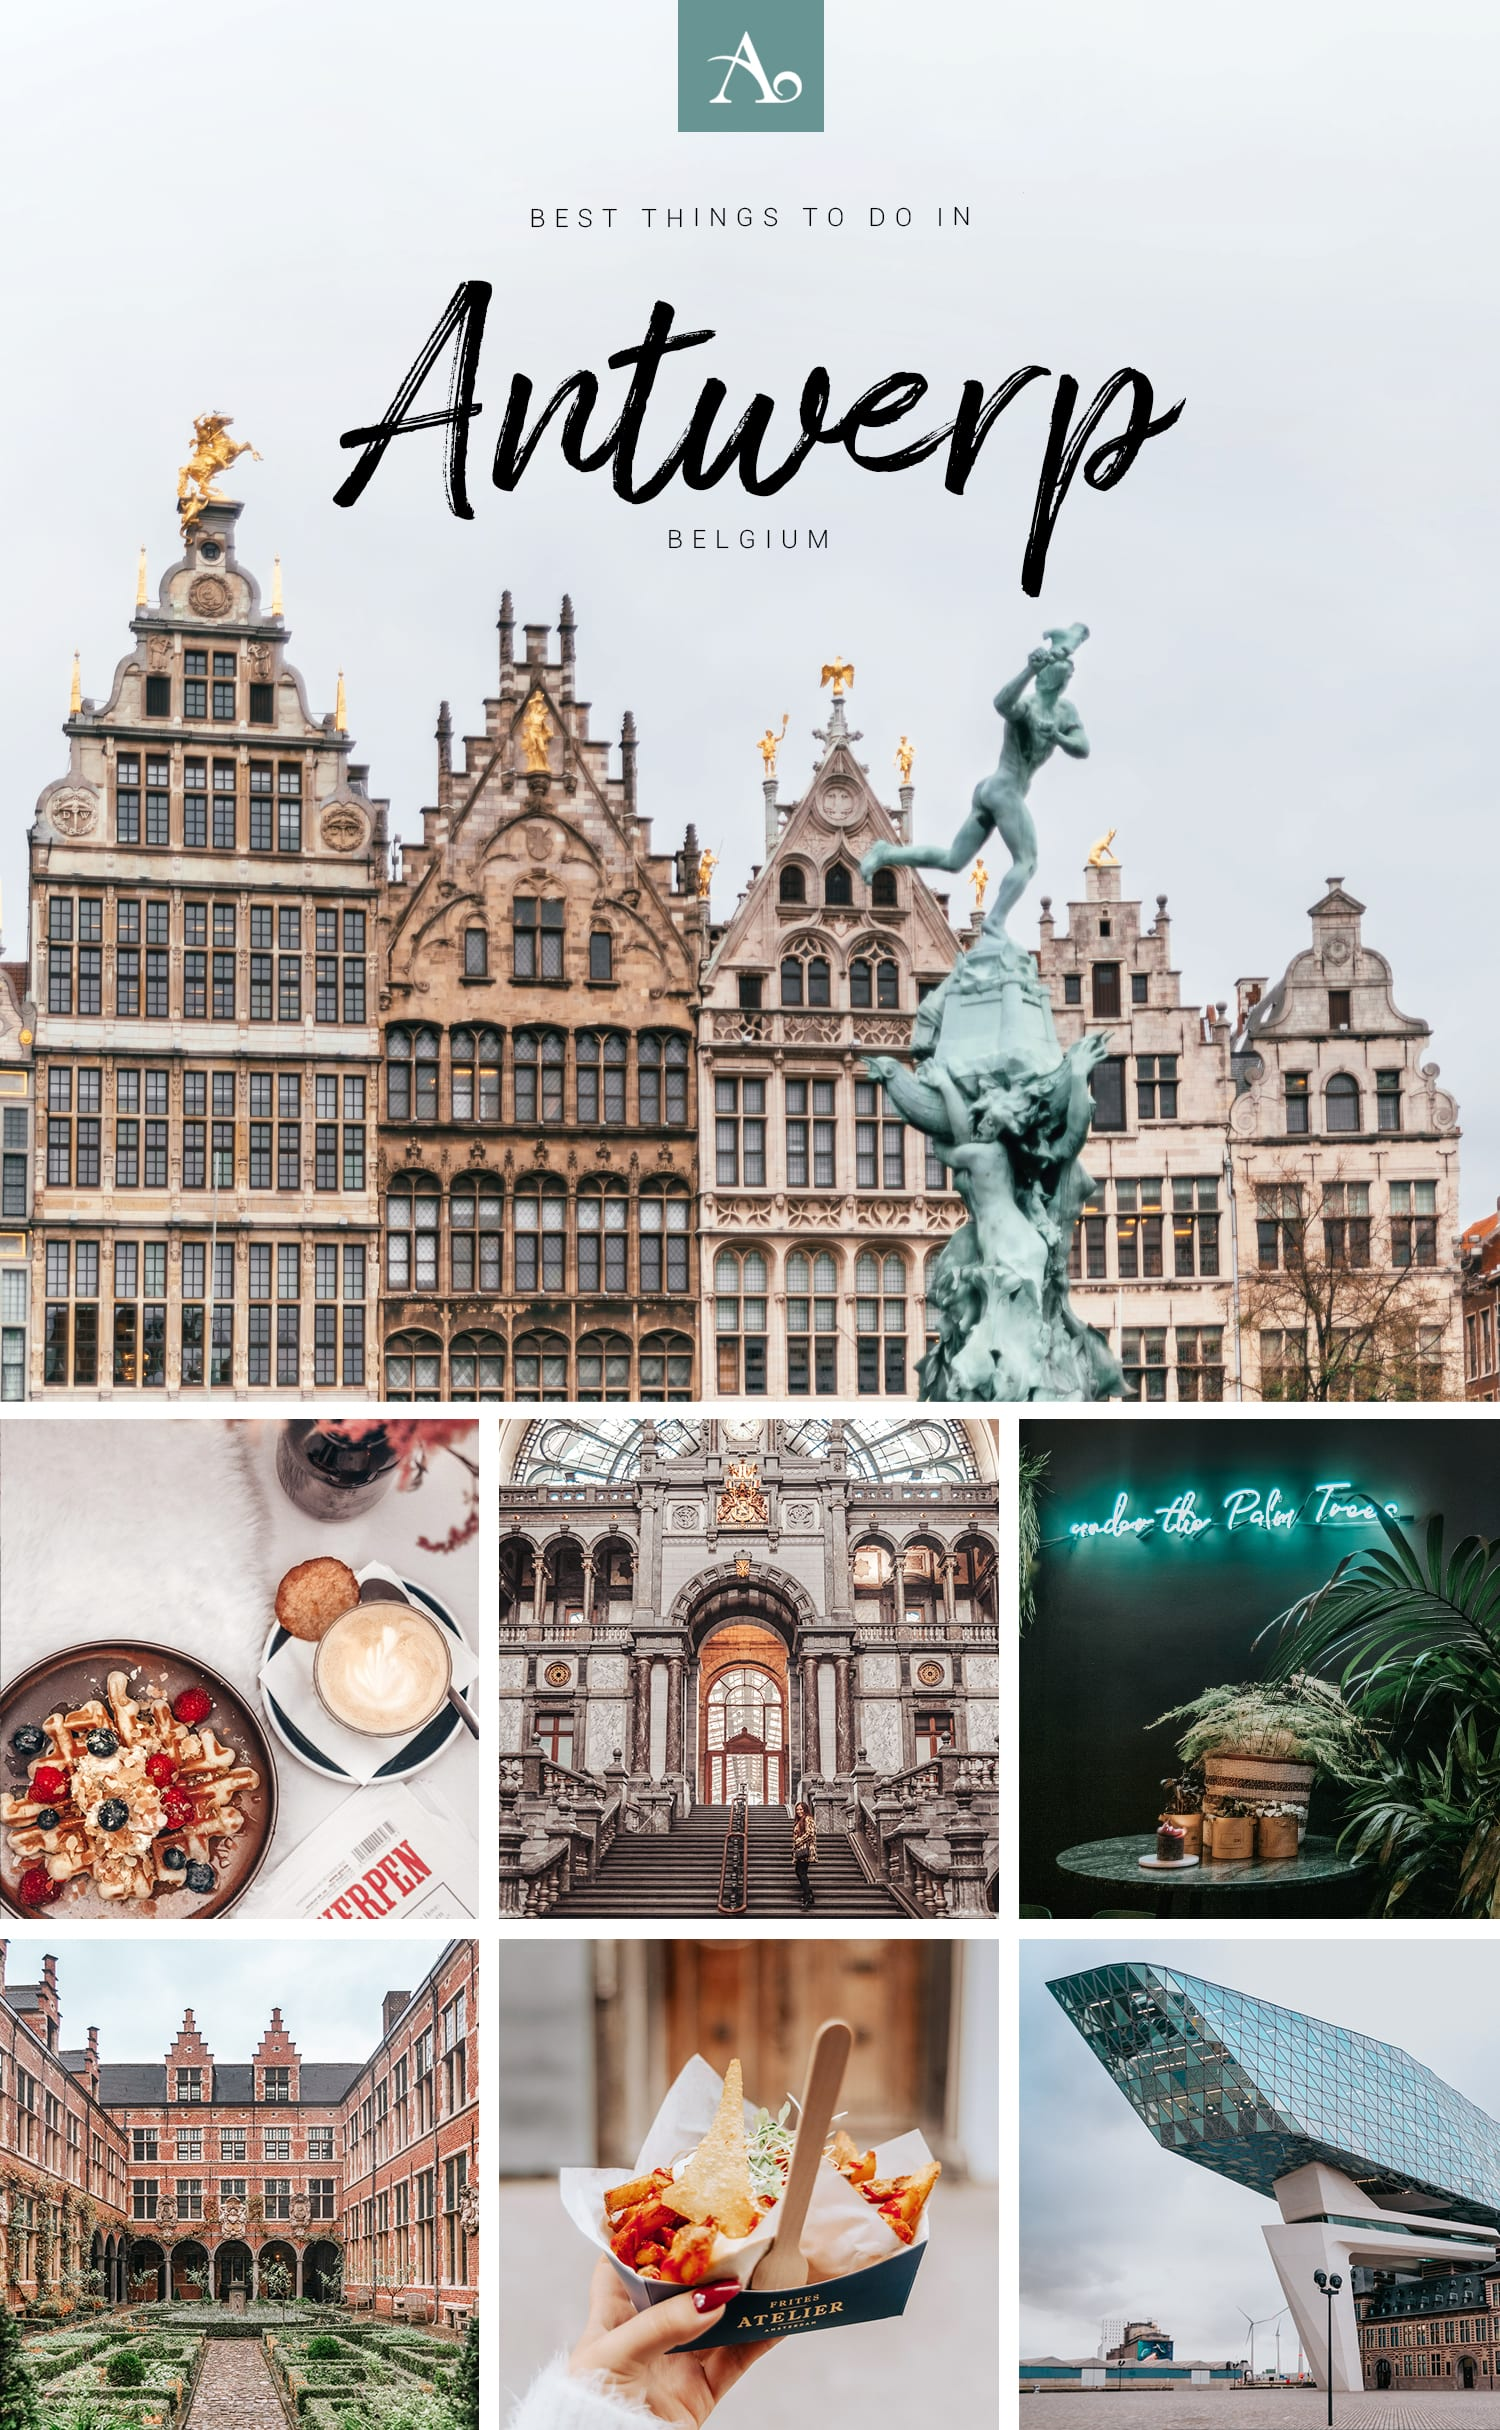 Best Things to Do in Antwerp, Belgium